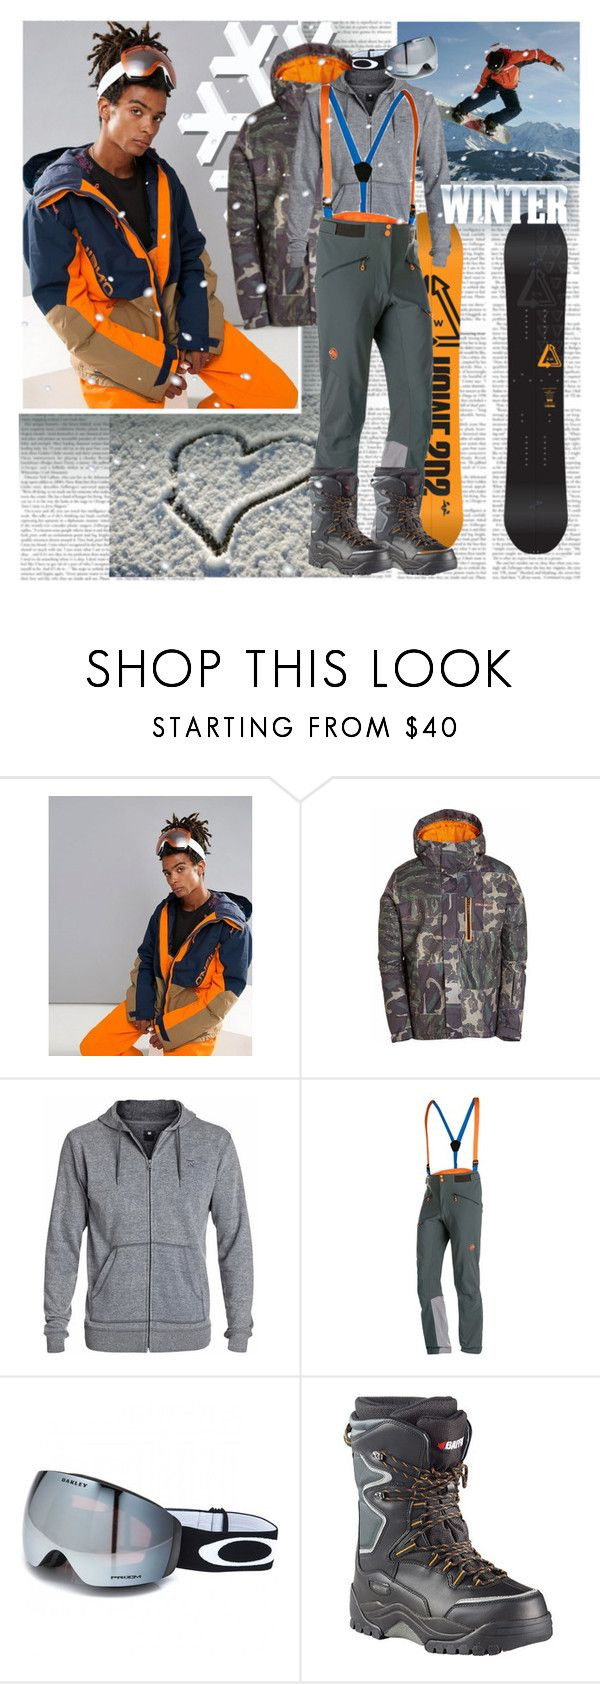 """""""Snowboard Men"""" by stylepersonal ❤ liked on Polyvore featuring O'Neill, Billabong, DC Shoes, Mammut, Oakley, Baffin, men's fashion, menswear, snow and Snowboard"""